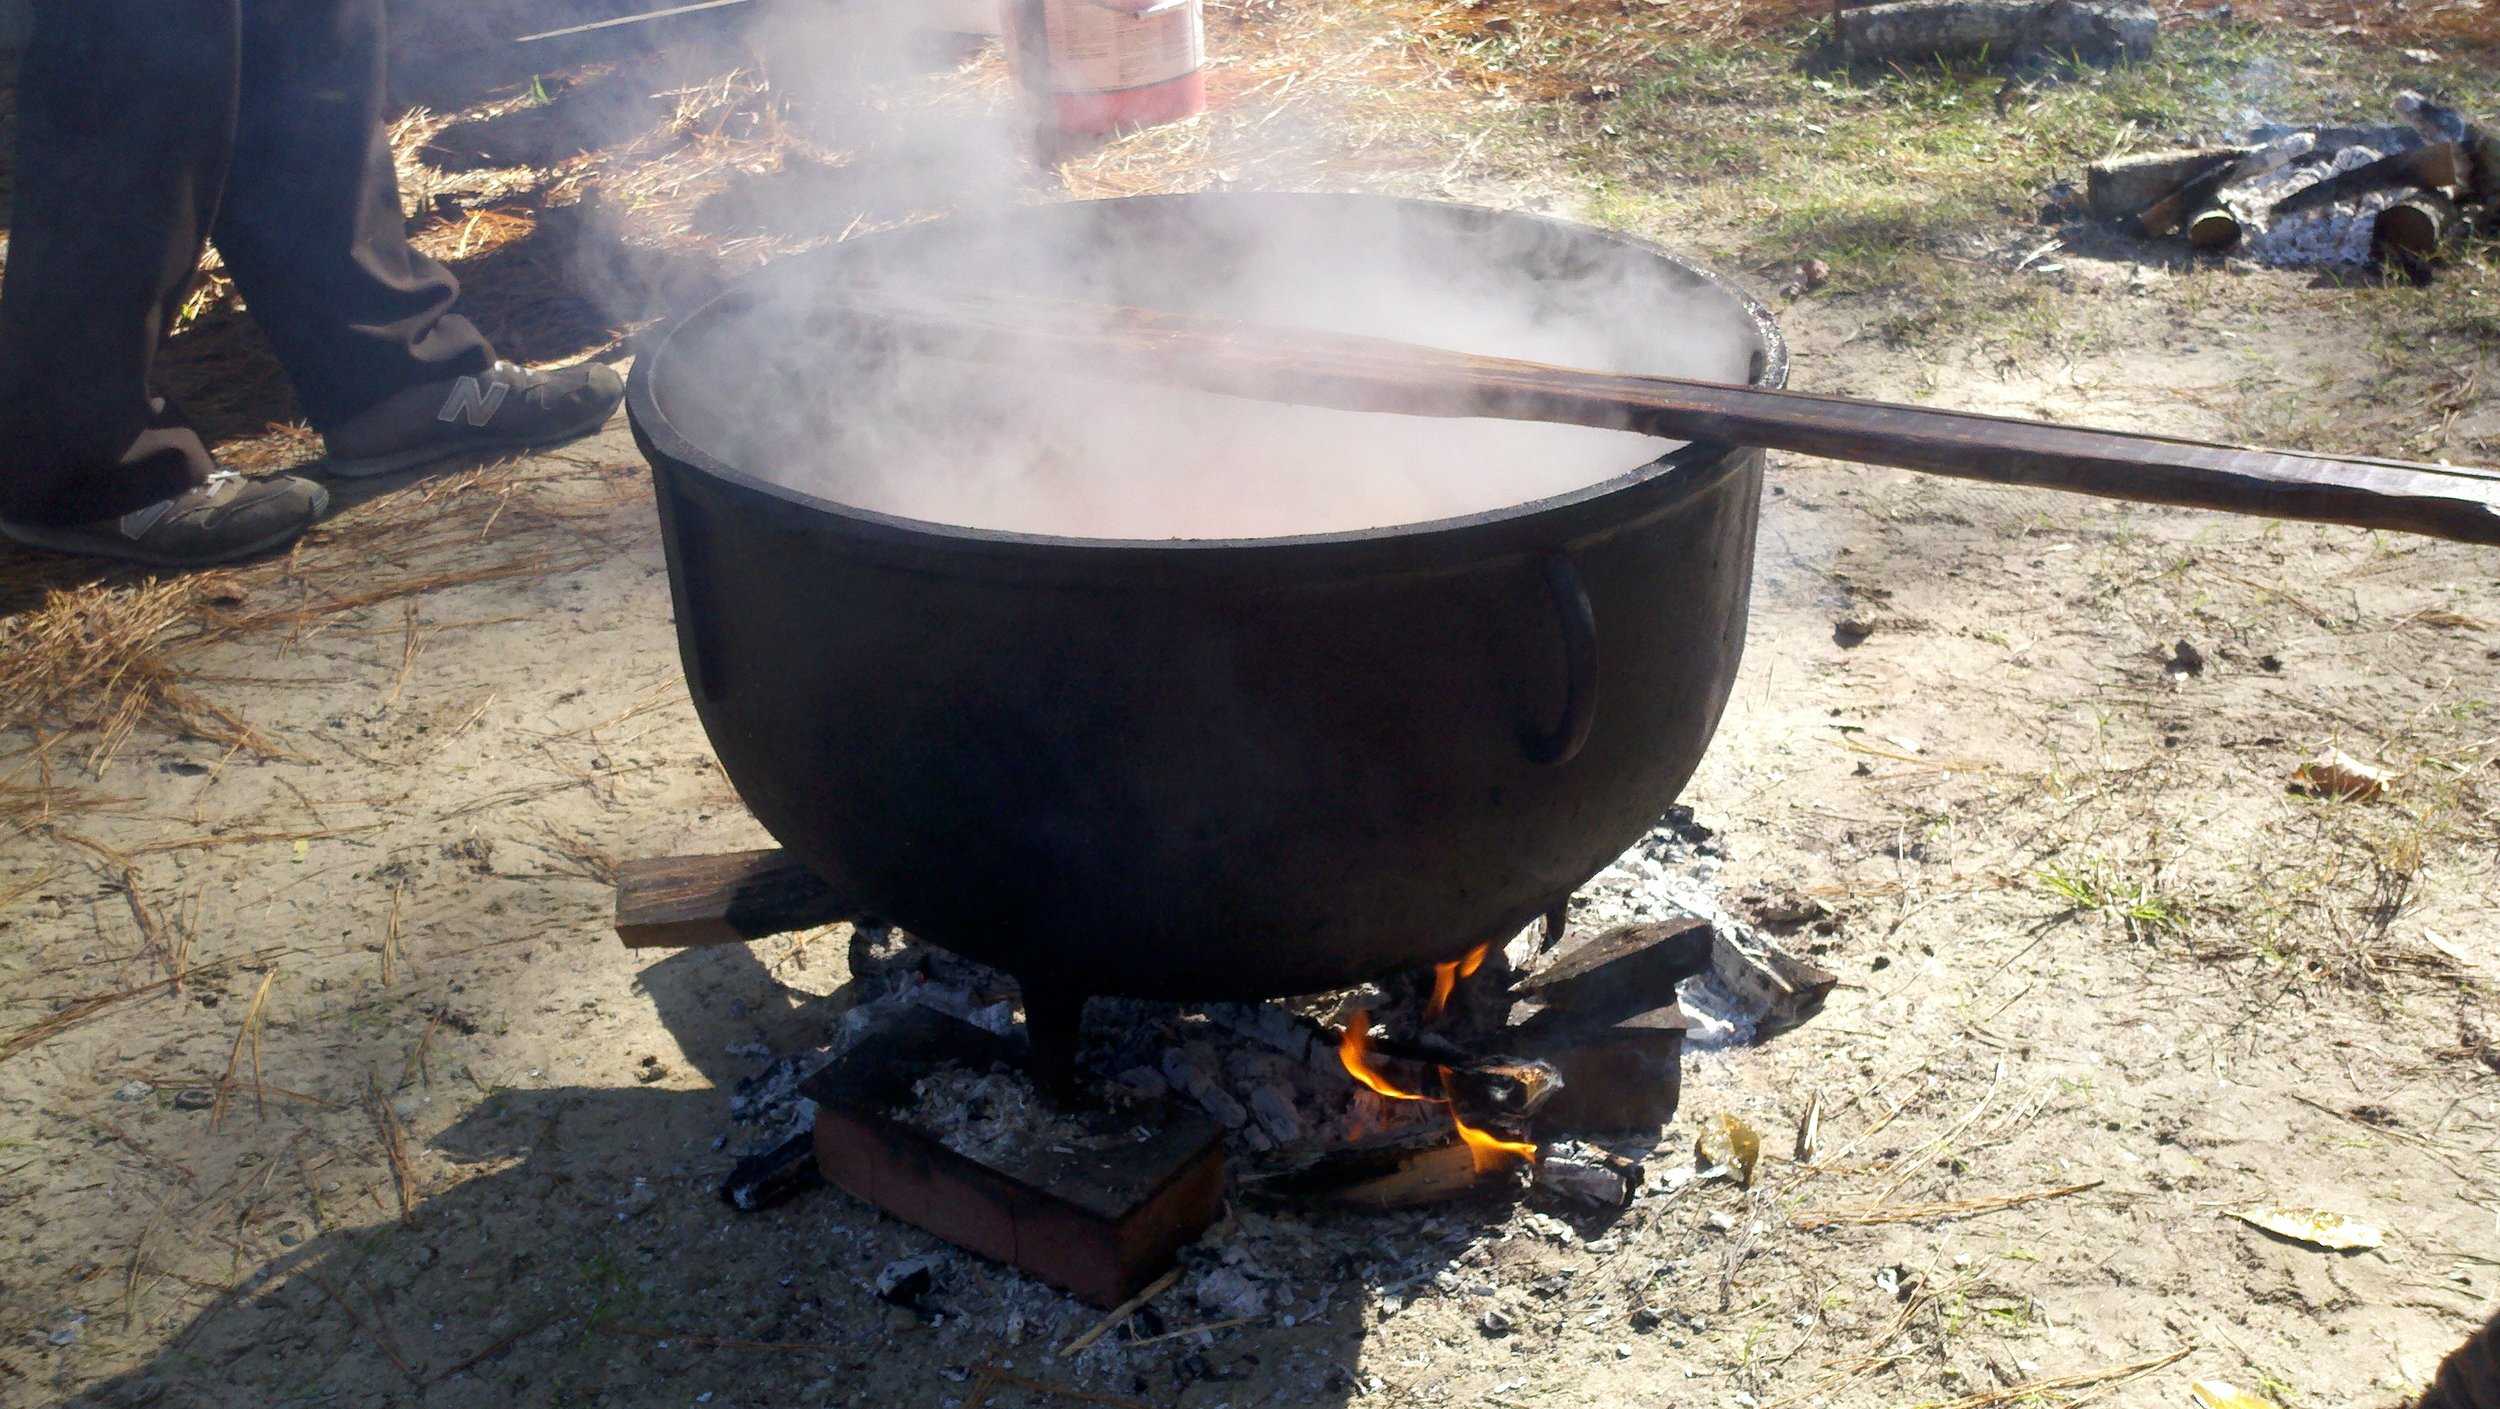 The cauldron of brunswick stew.  My husbands families tradition of marking the fall season.